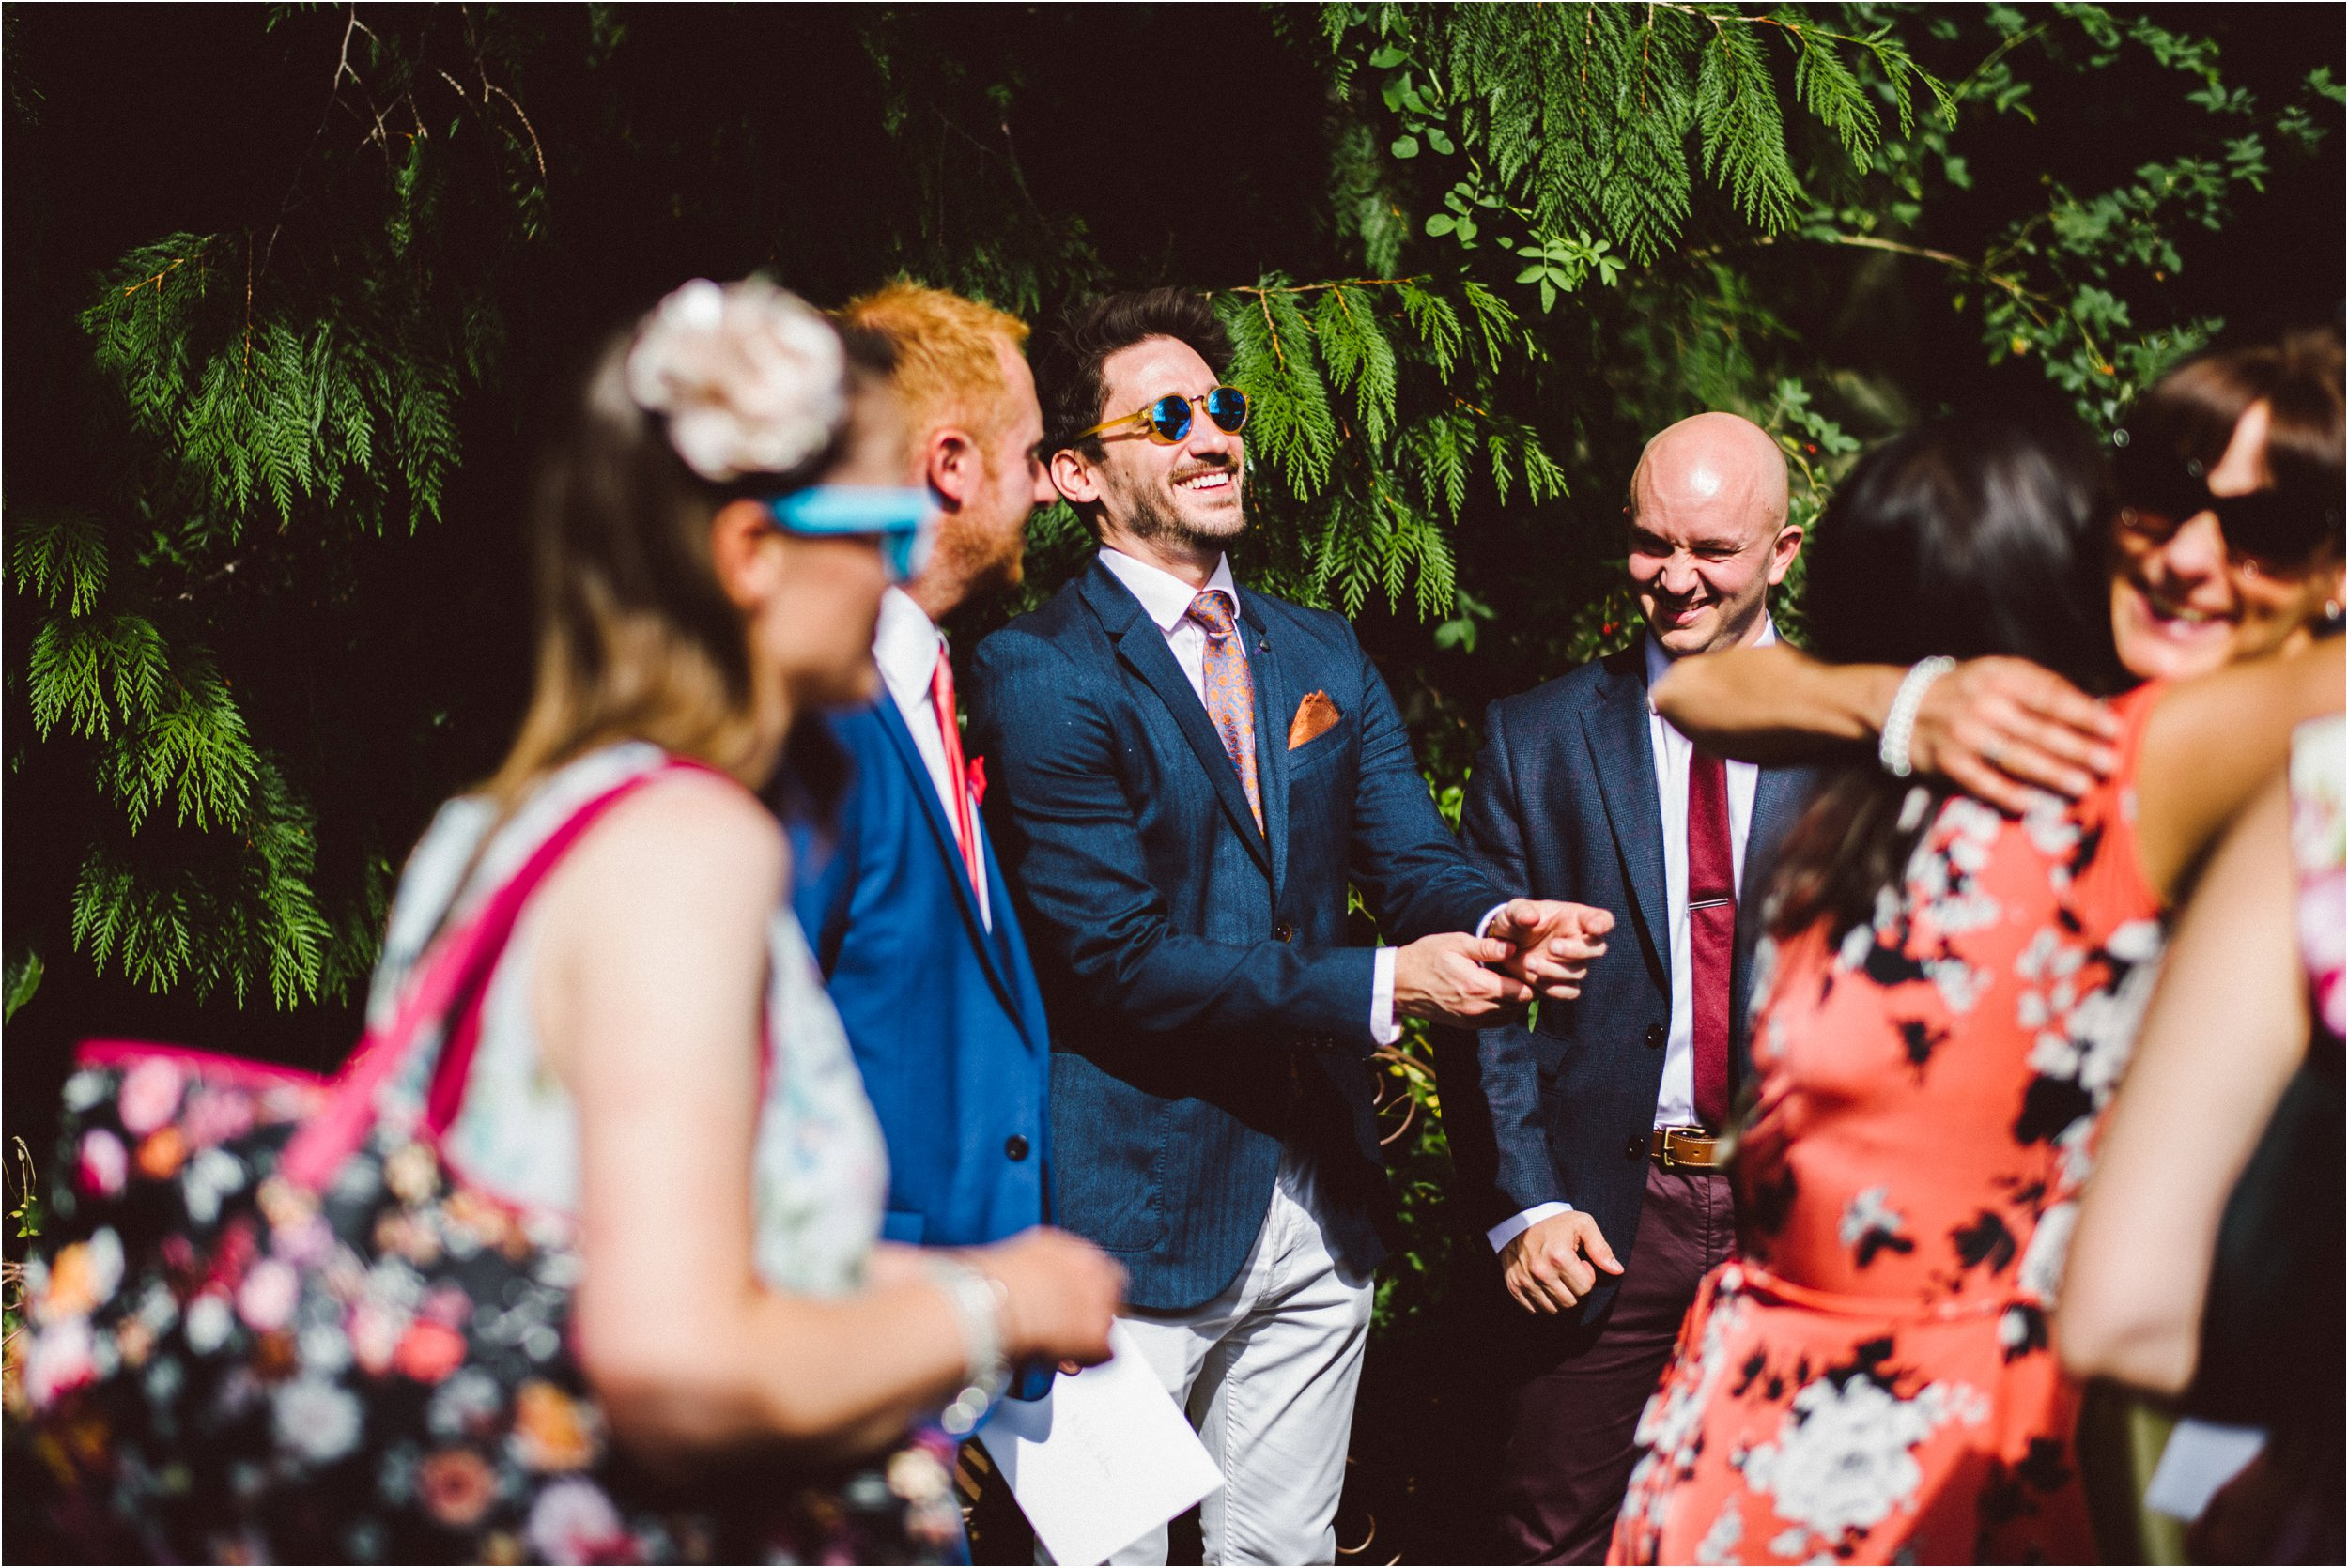 Gloucestershire outdoor wedding photographer_0010.jpg